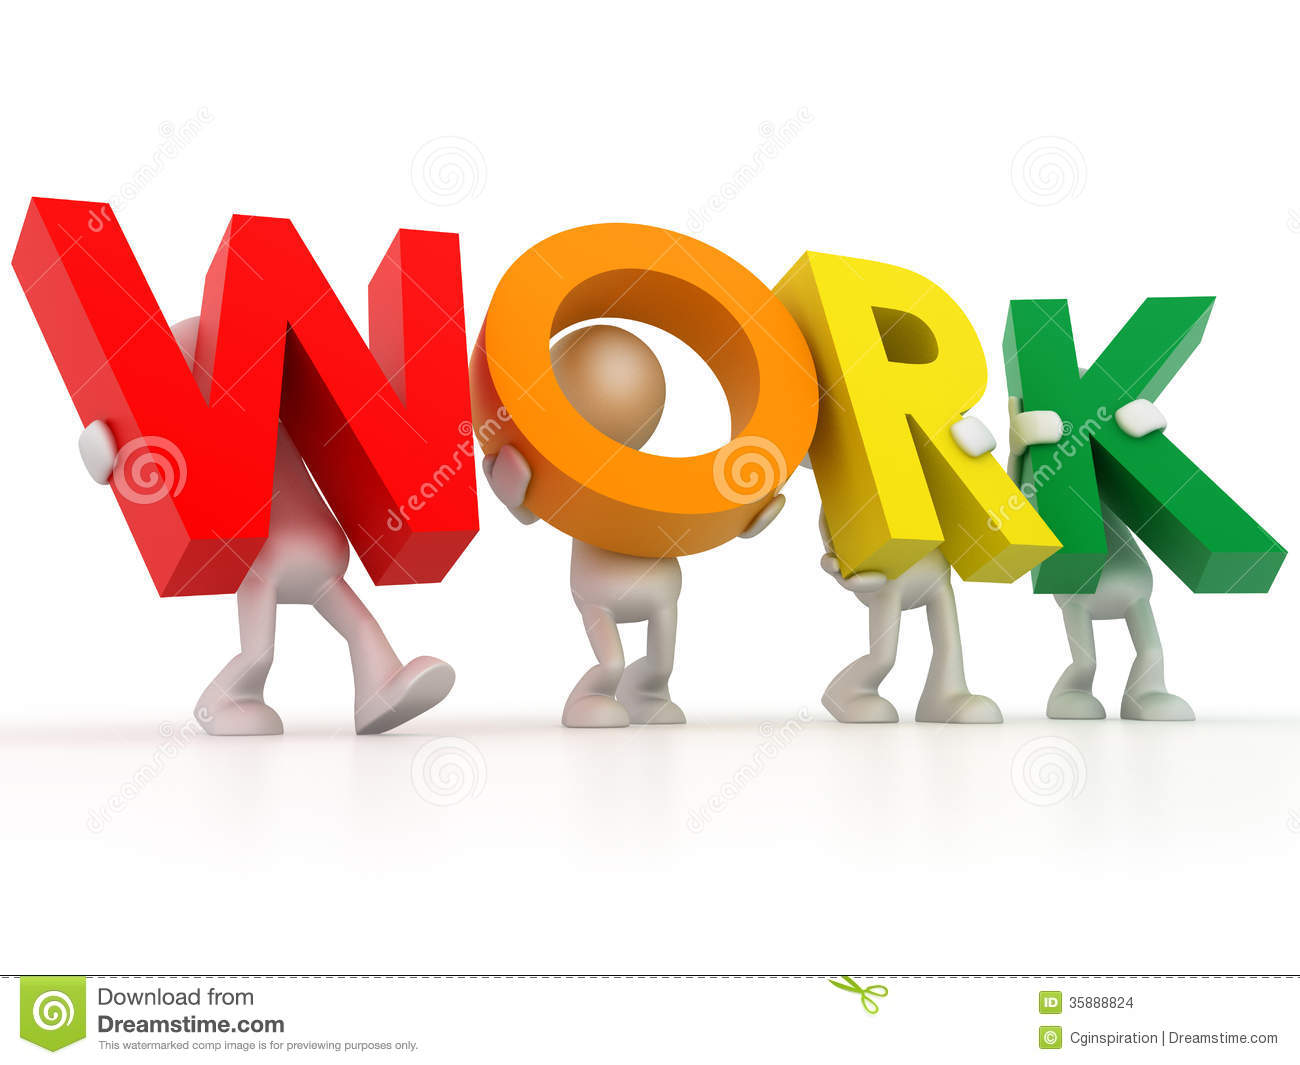 Work ebfc e fc. Activities clipart word